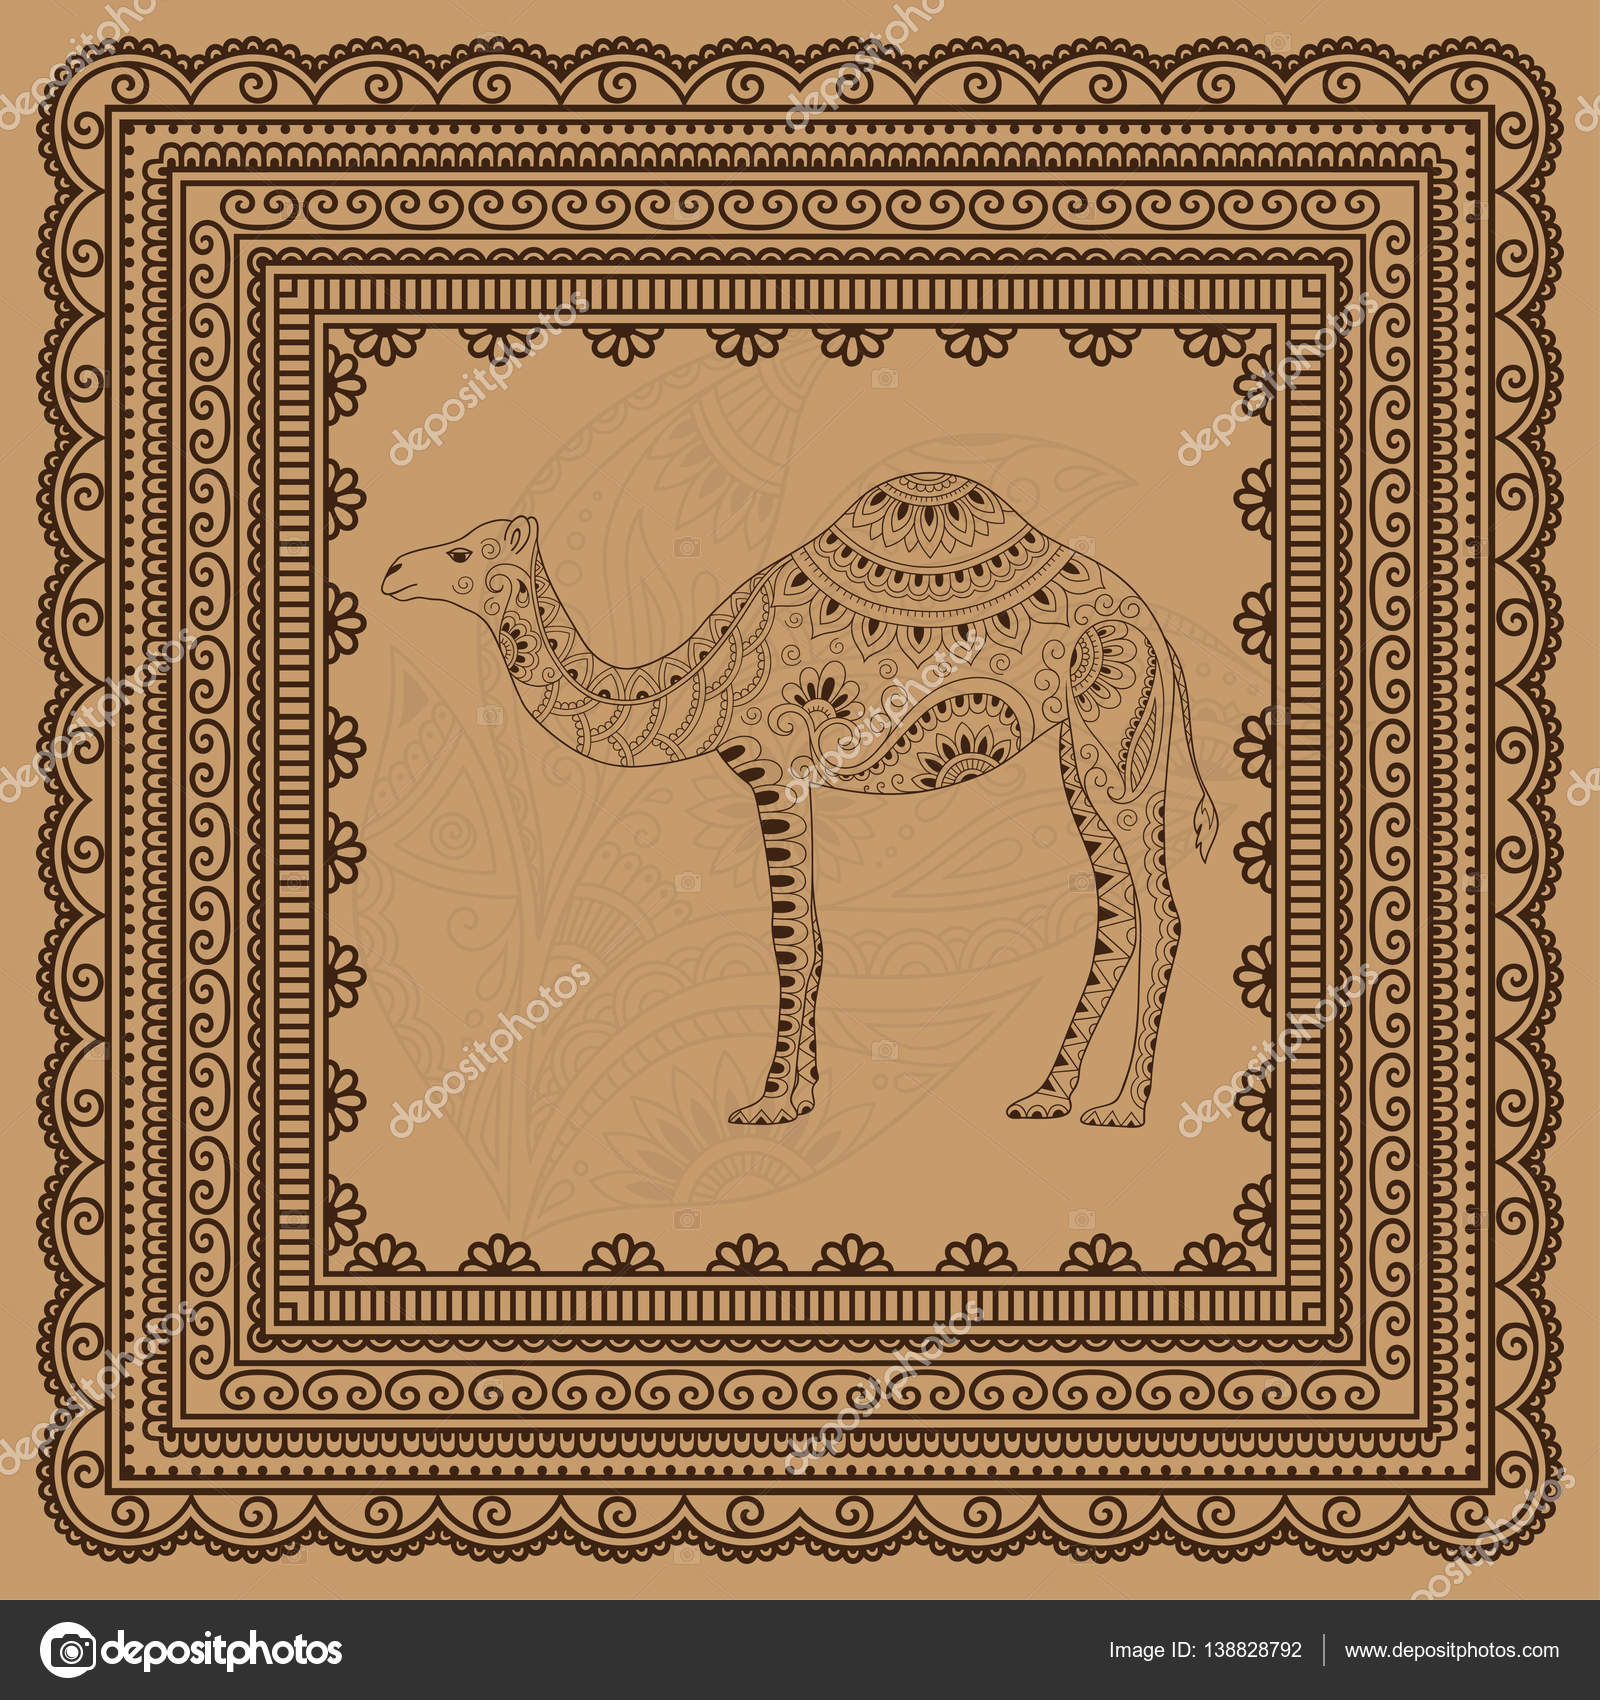 Doodle Stylized Camel And Seamless Borders For Design And